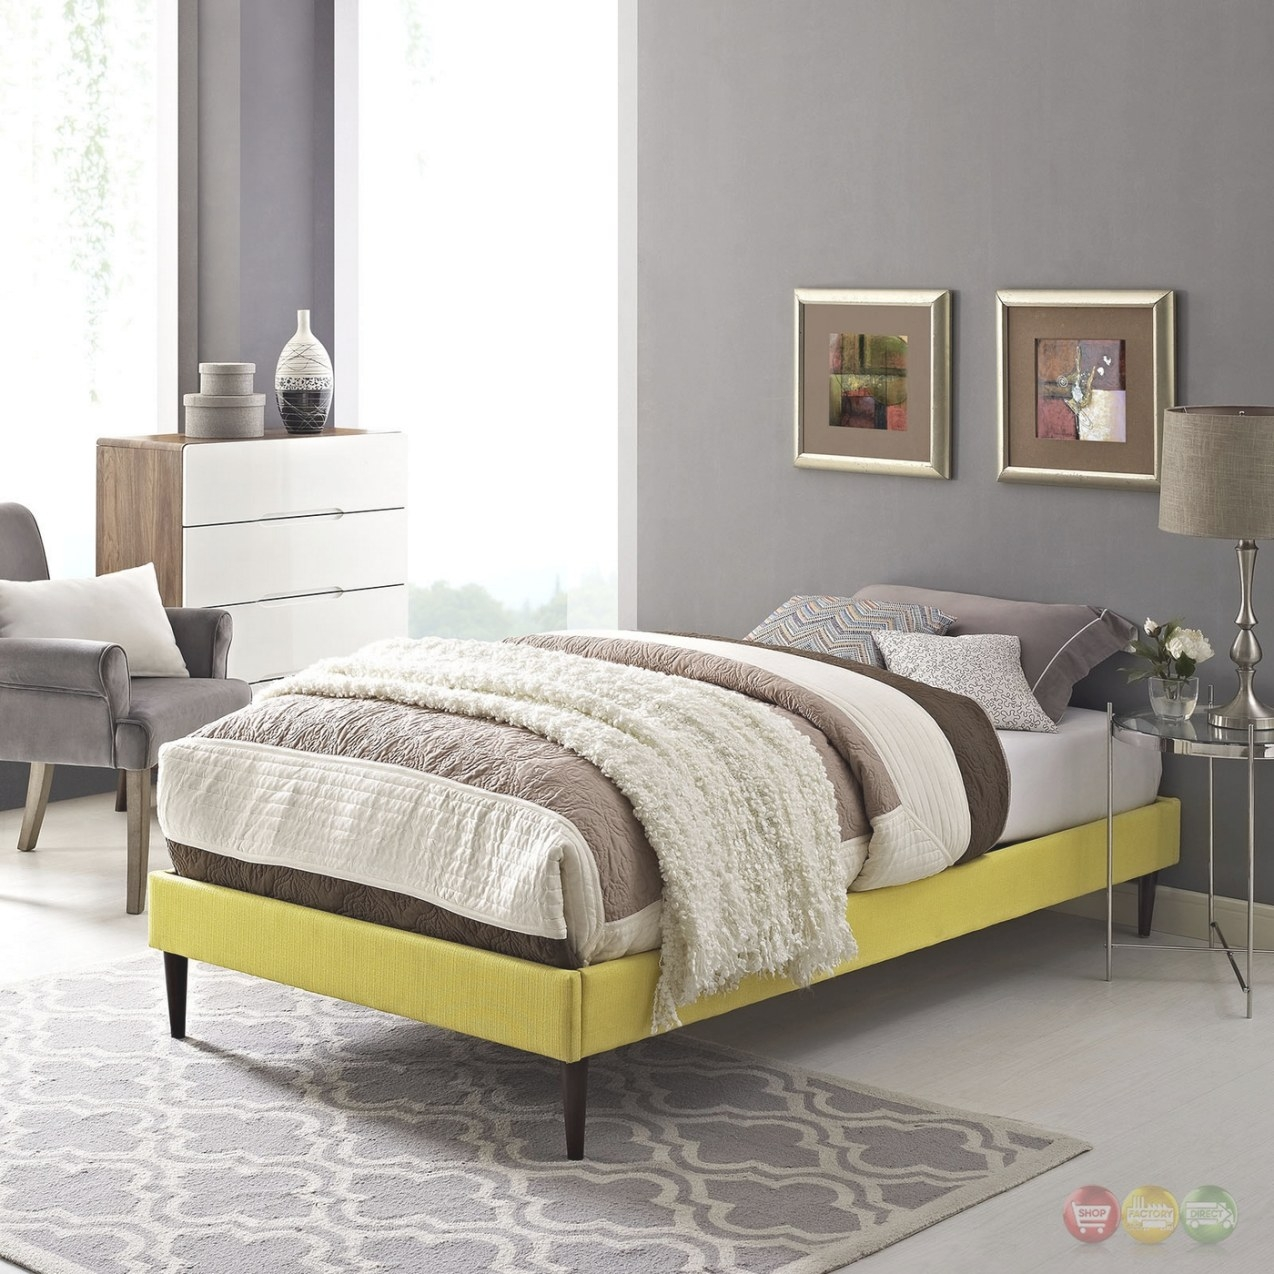 Sherry Upholstered Fabric Twin Platform Bed Frame, Sunny for Twin Platform Bed Frame